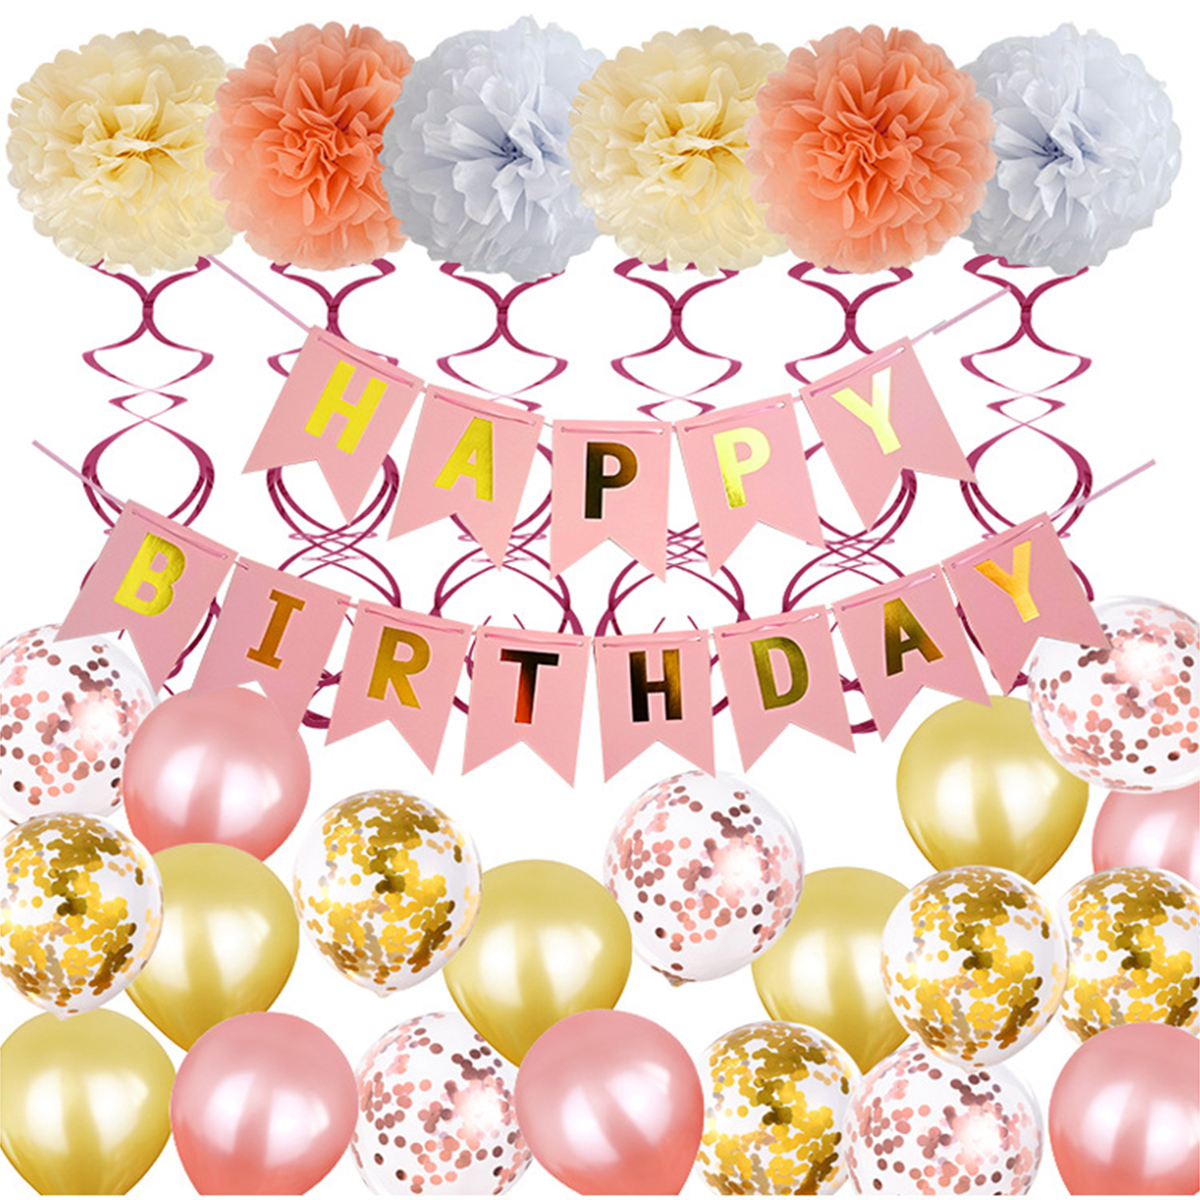 2019 Birthday Party Supplies Decoration Kit 12inch Balloons Happy Birthday Banner Hanging Swirls Latex Balloons Sequins Balloons